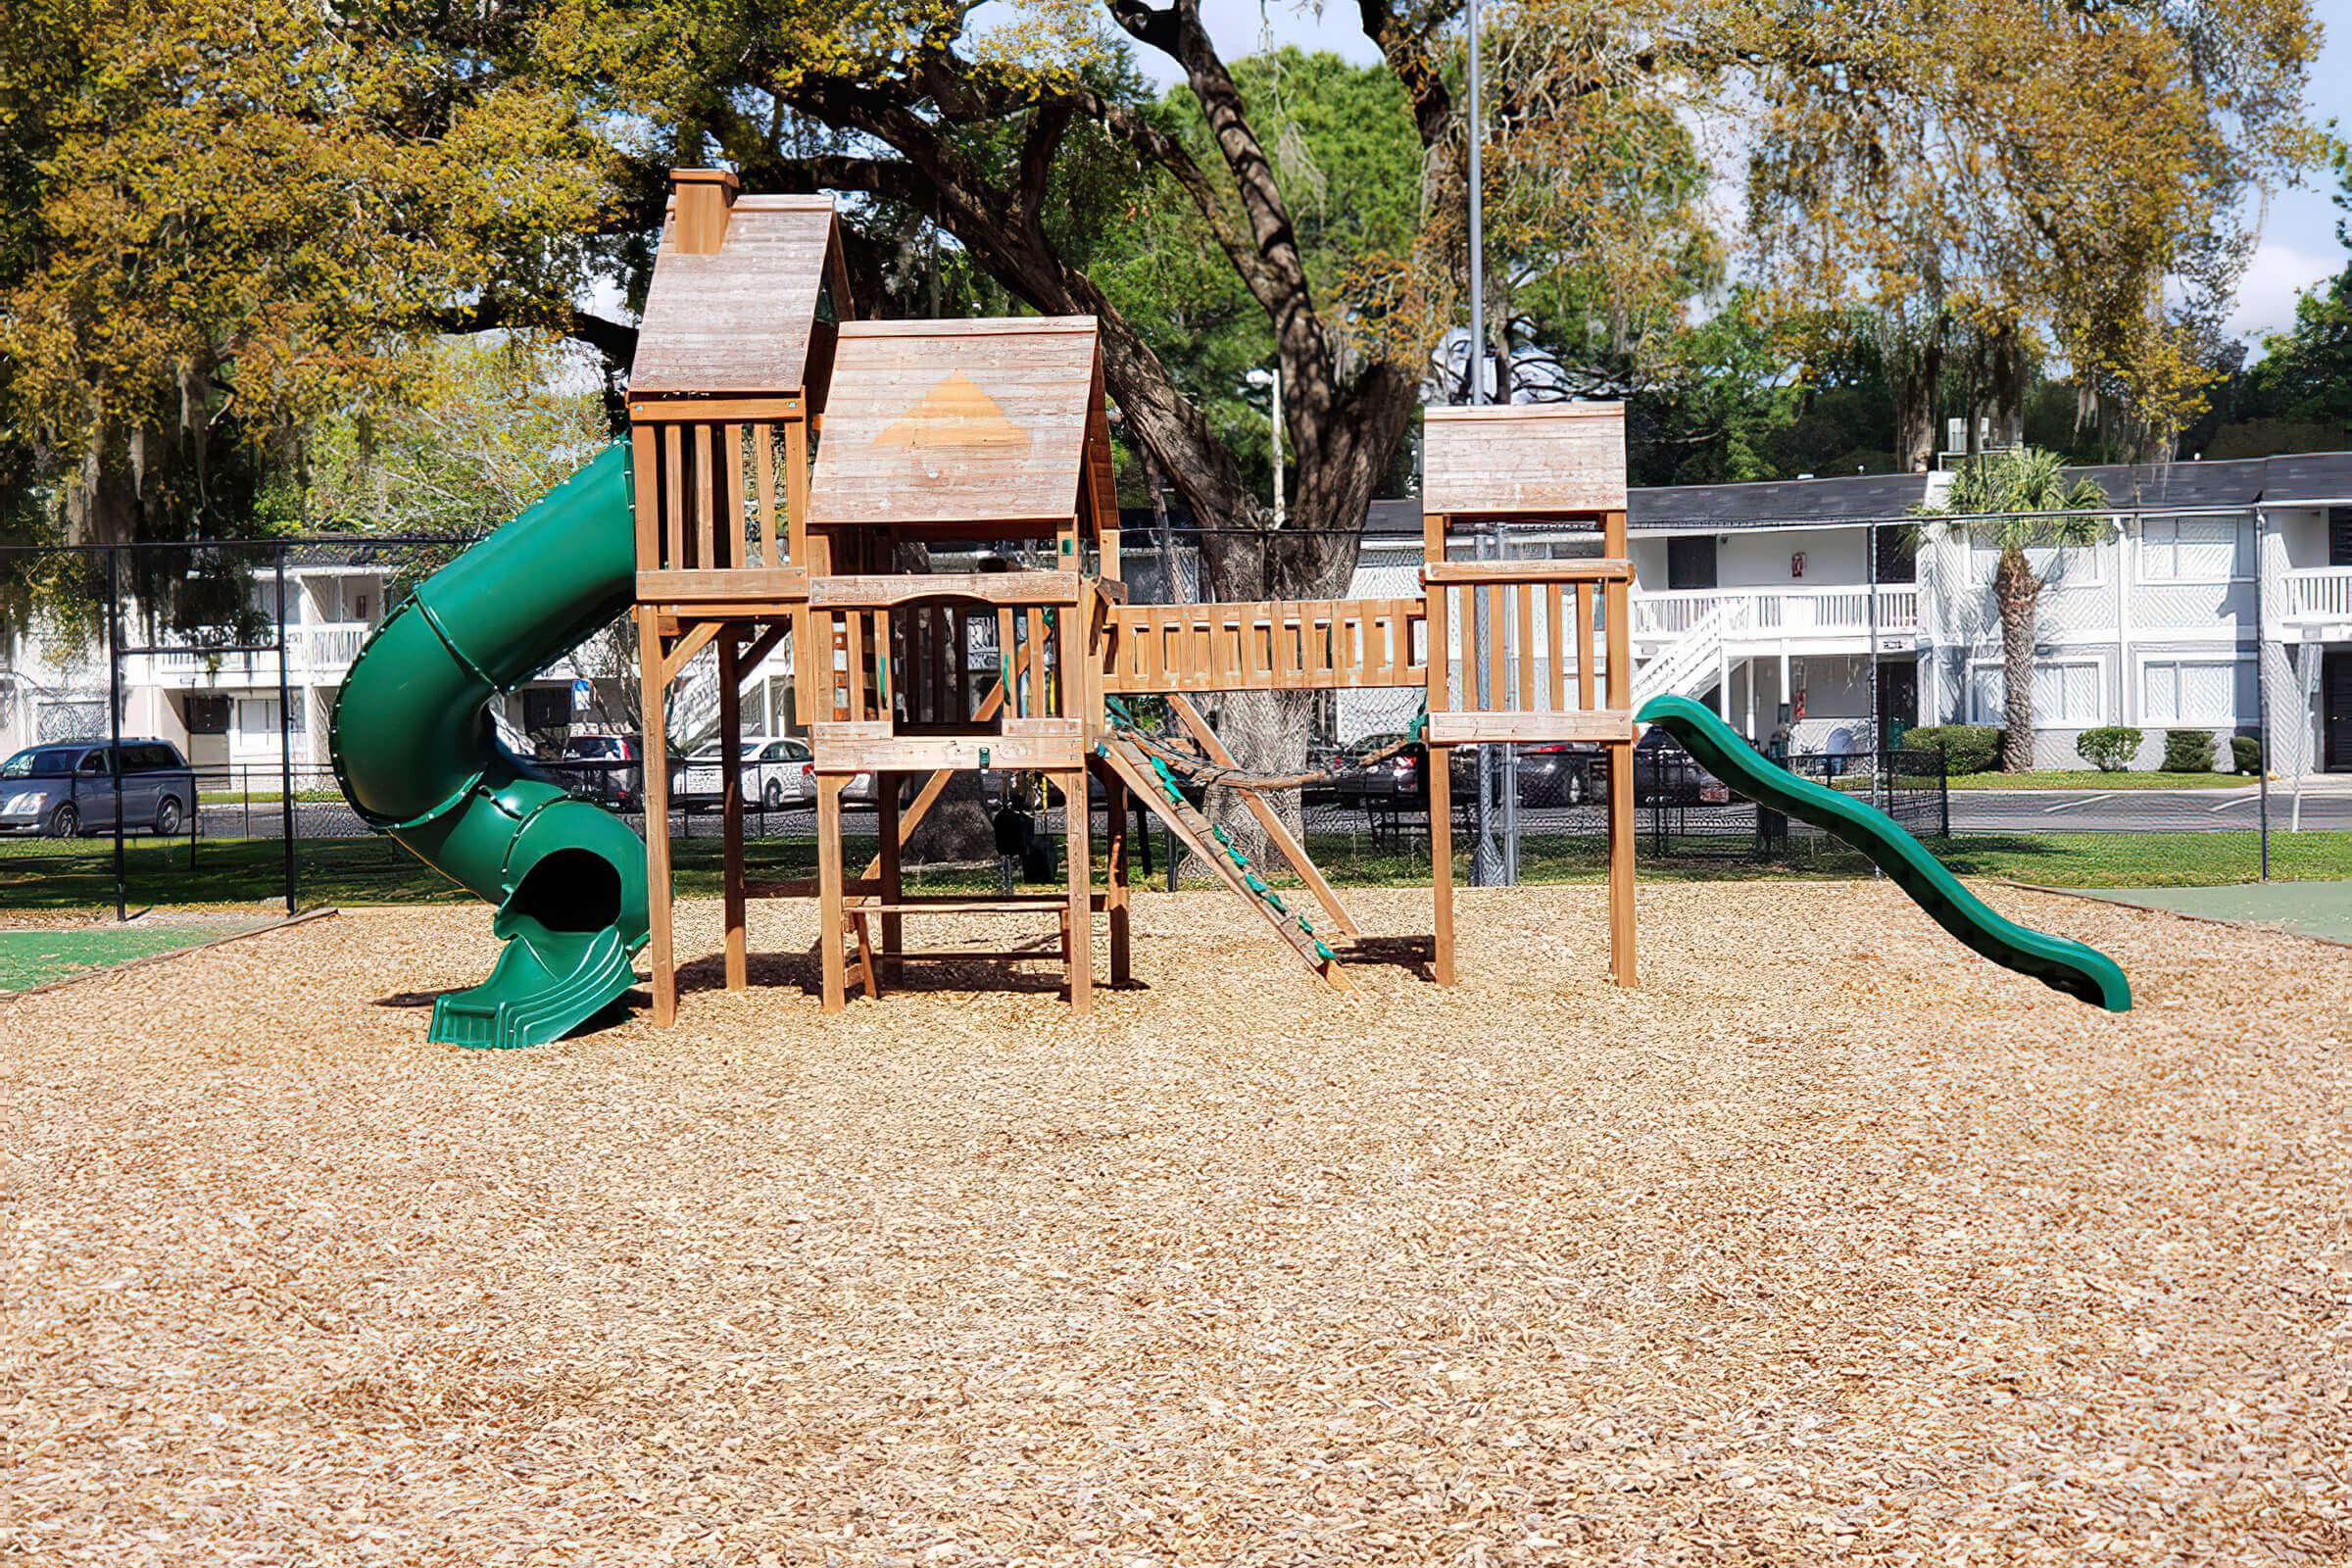 a playground in front of a green chair